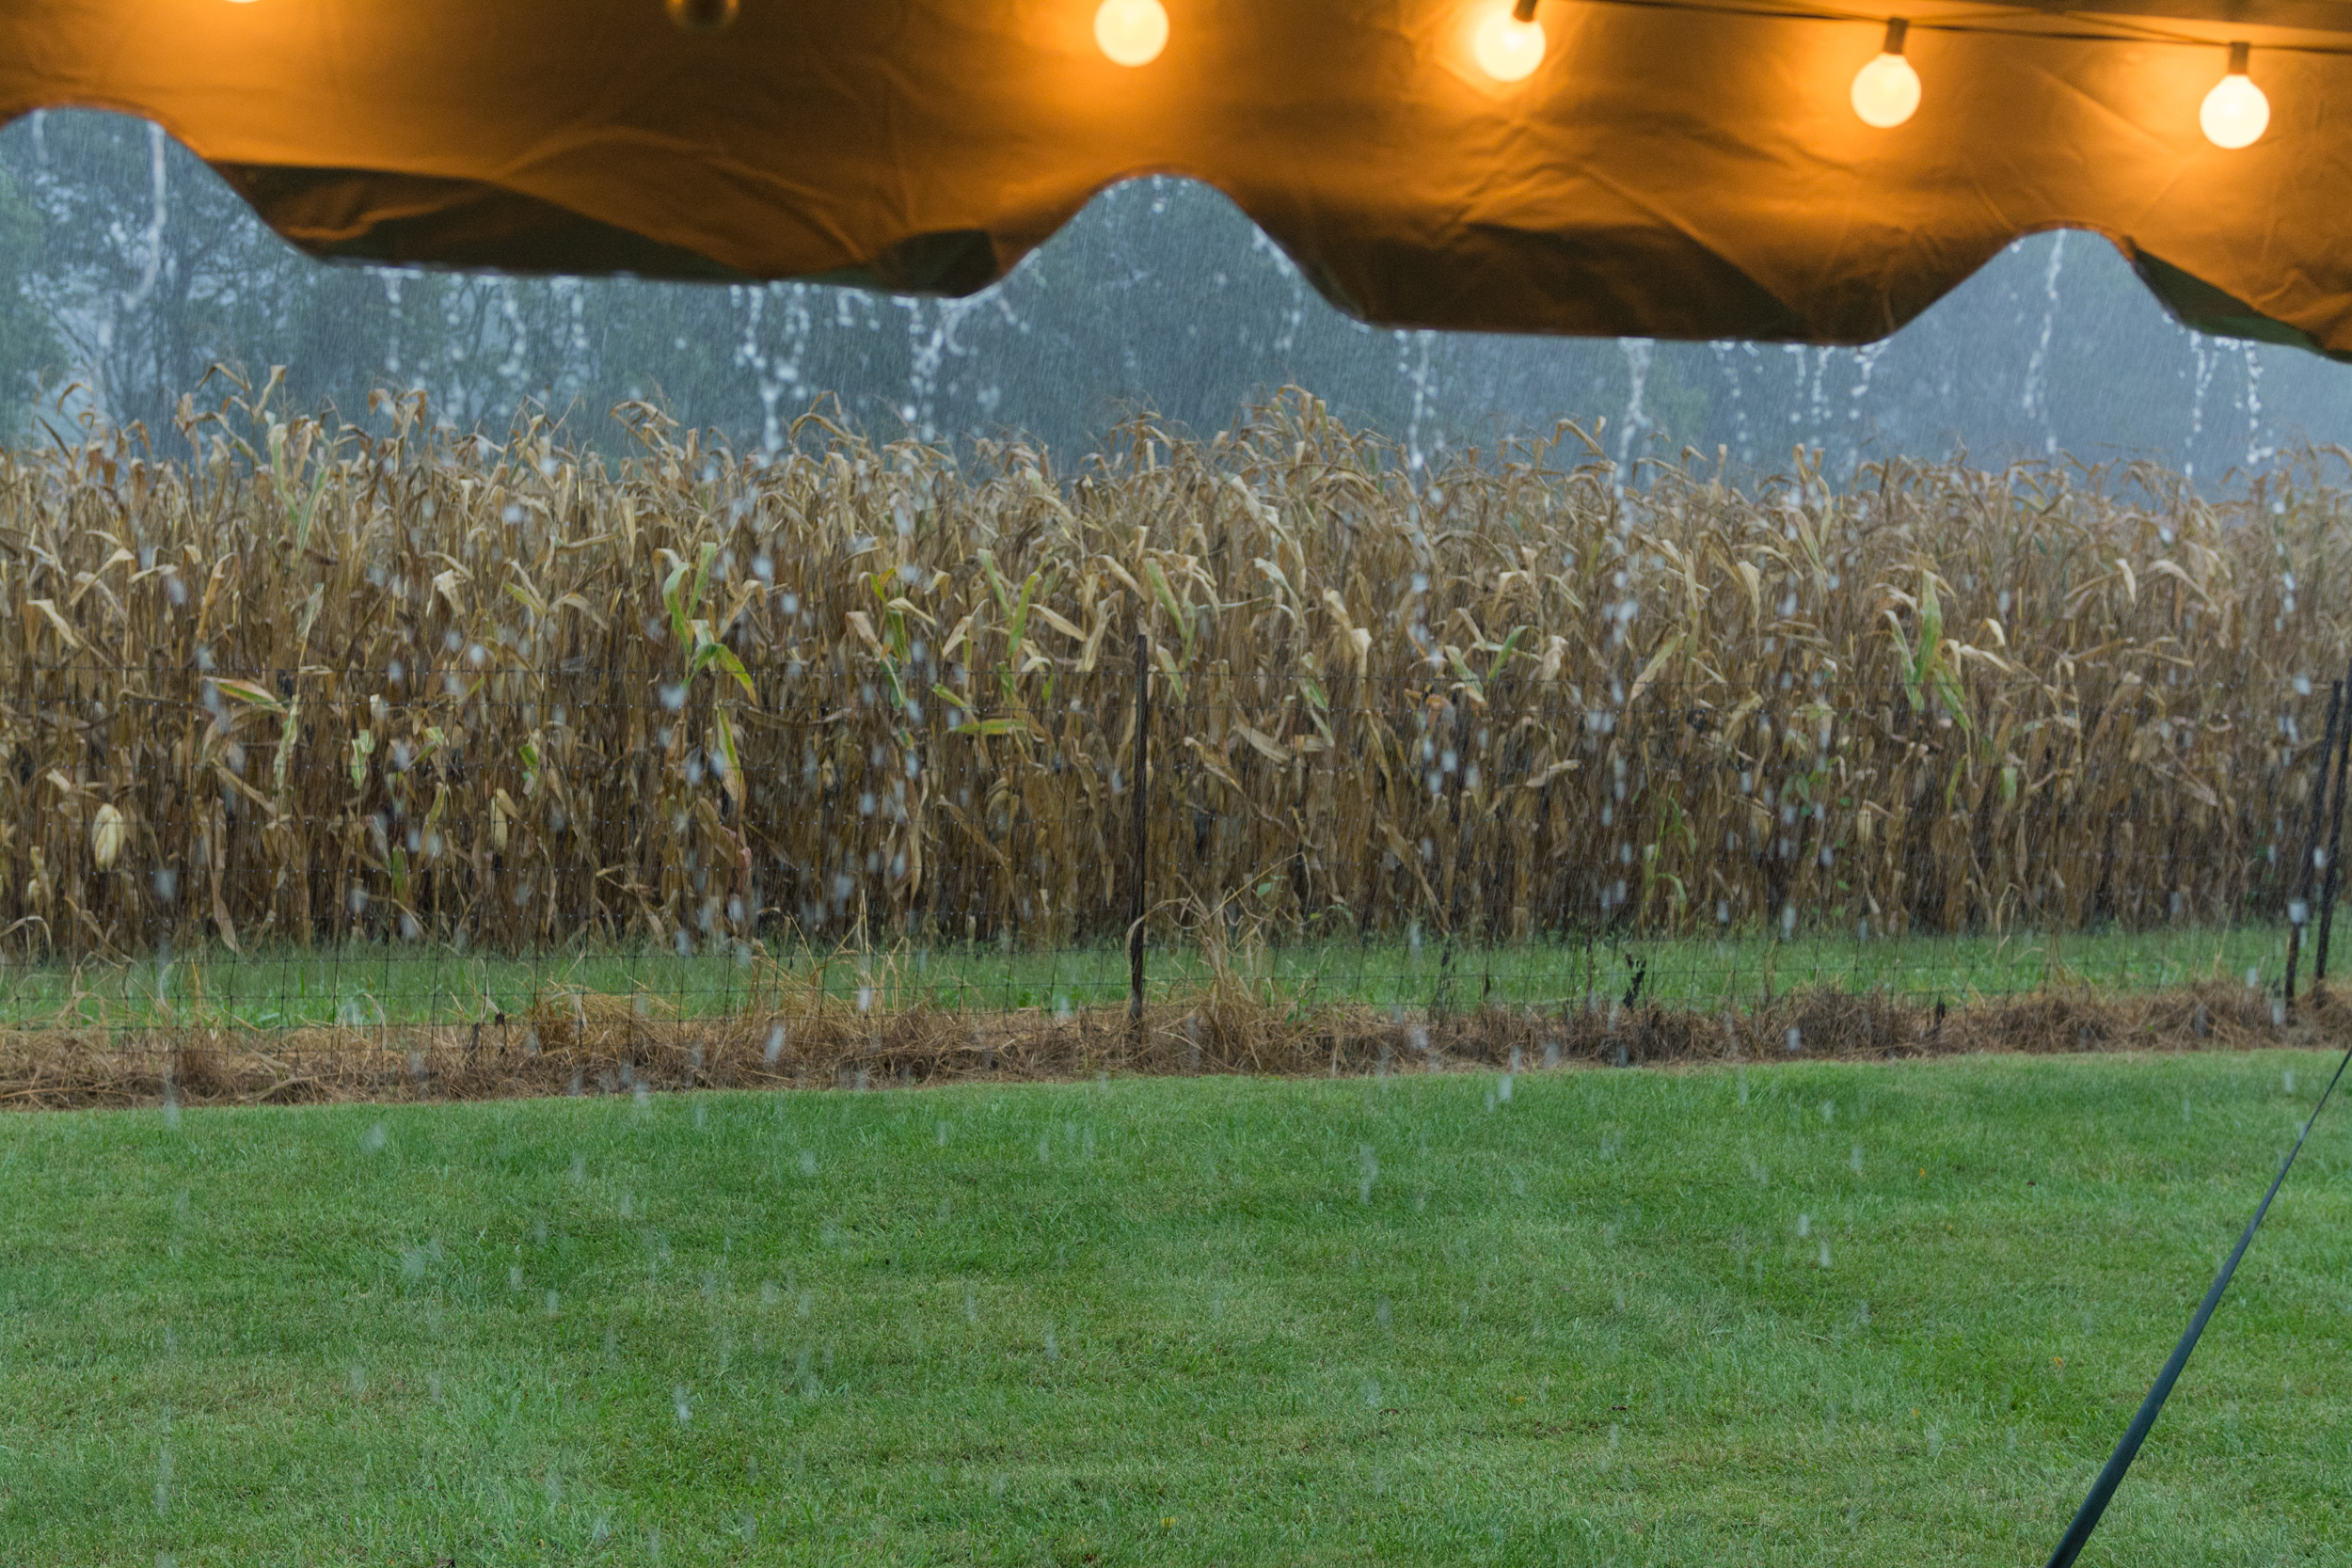 Life_by_pictures_photography dick wedding mount sterling ohio september_7.jpg